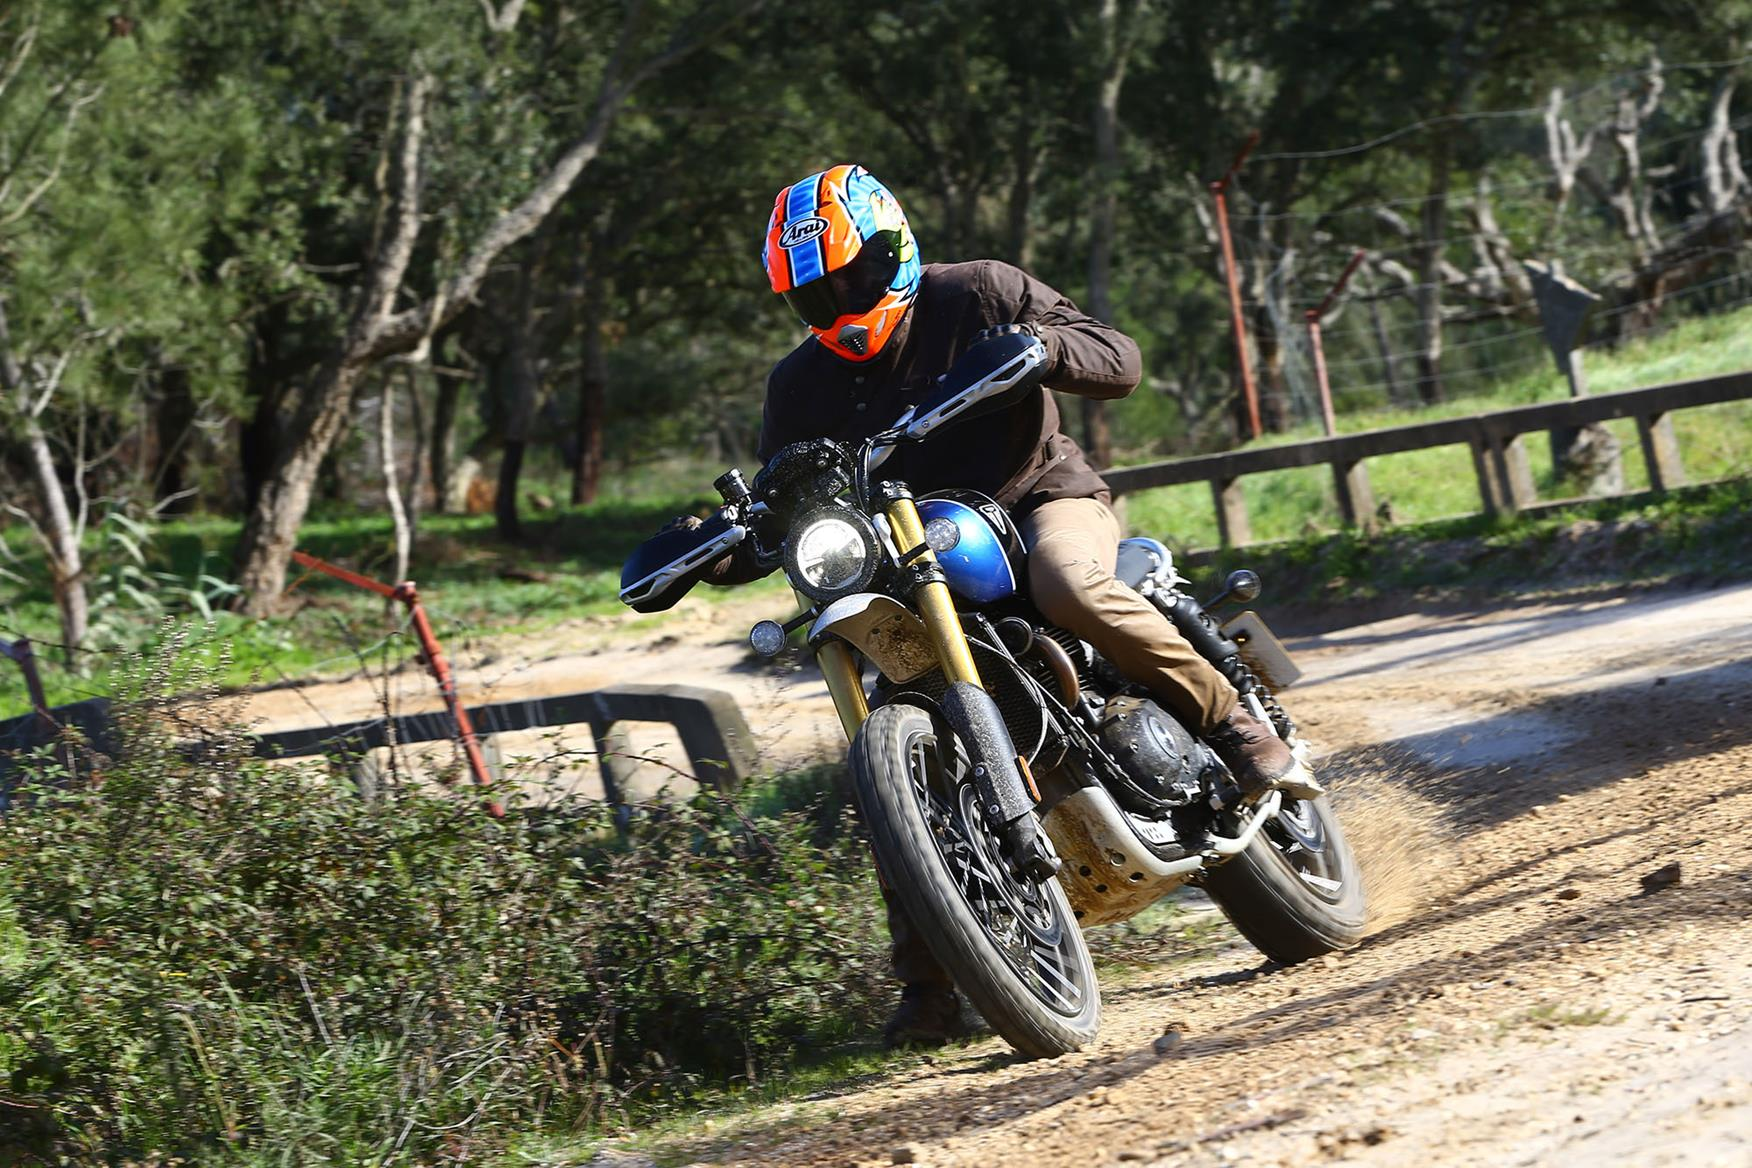 The Triumph Scrambler 1200 is a genuine off-road prospect